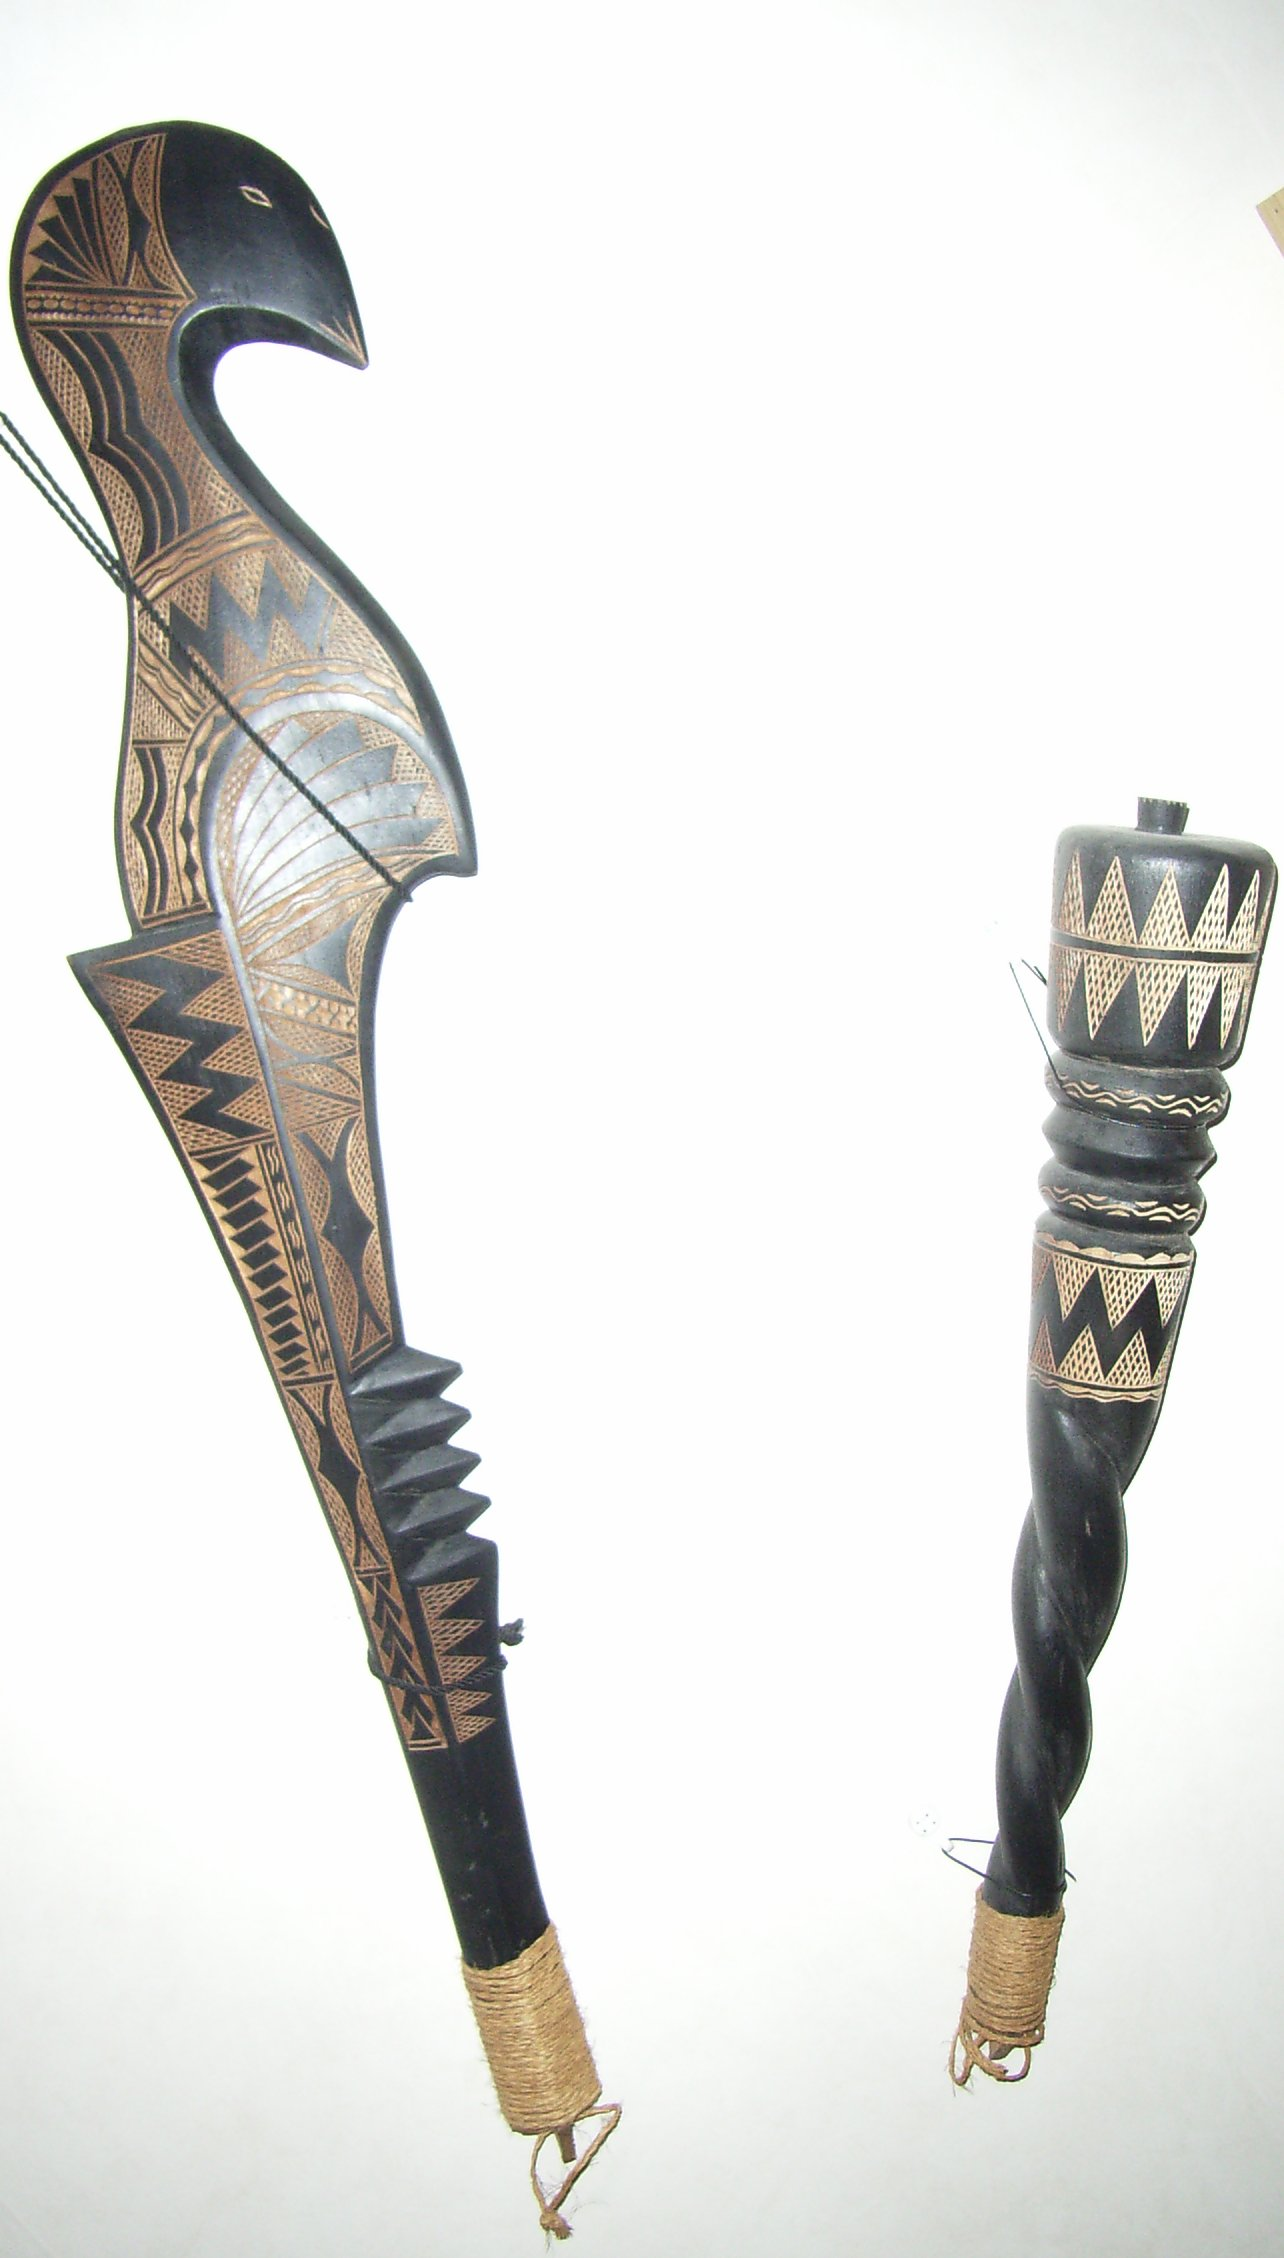 File:samoan weapons